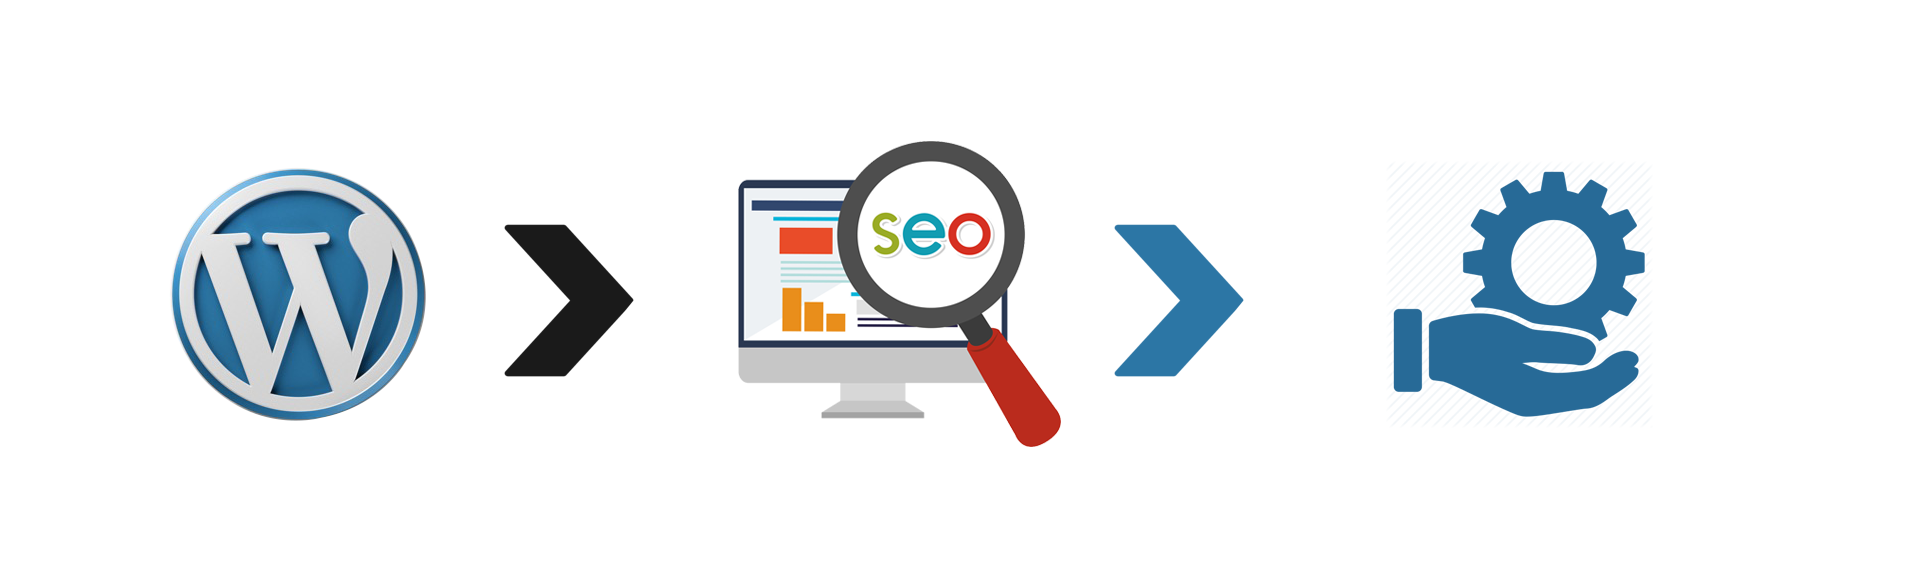 Search Engine Optimization (SEO) Tips and Tricks for WordPress Site - 10  points [2021 Edition] • Crunchify